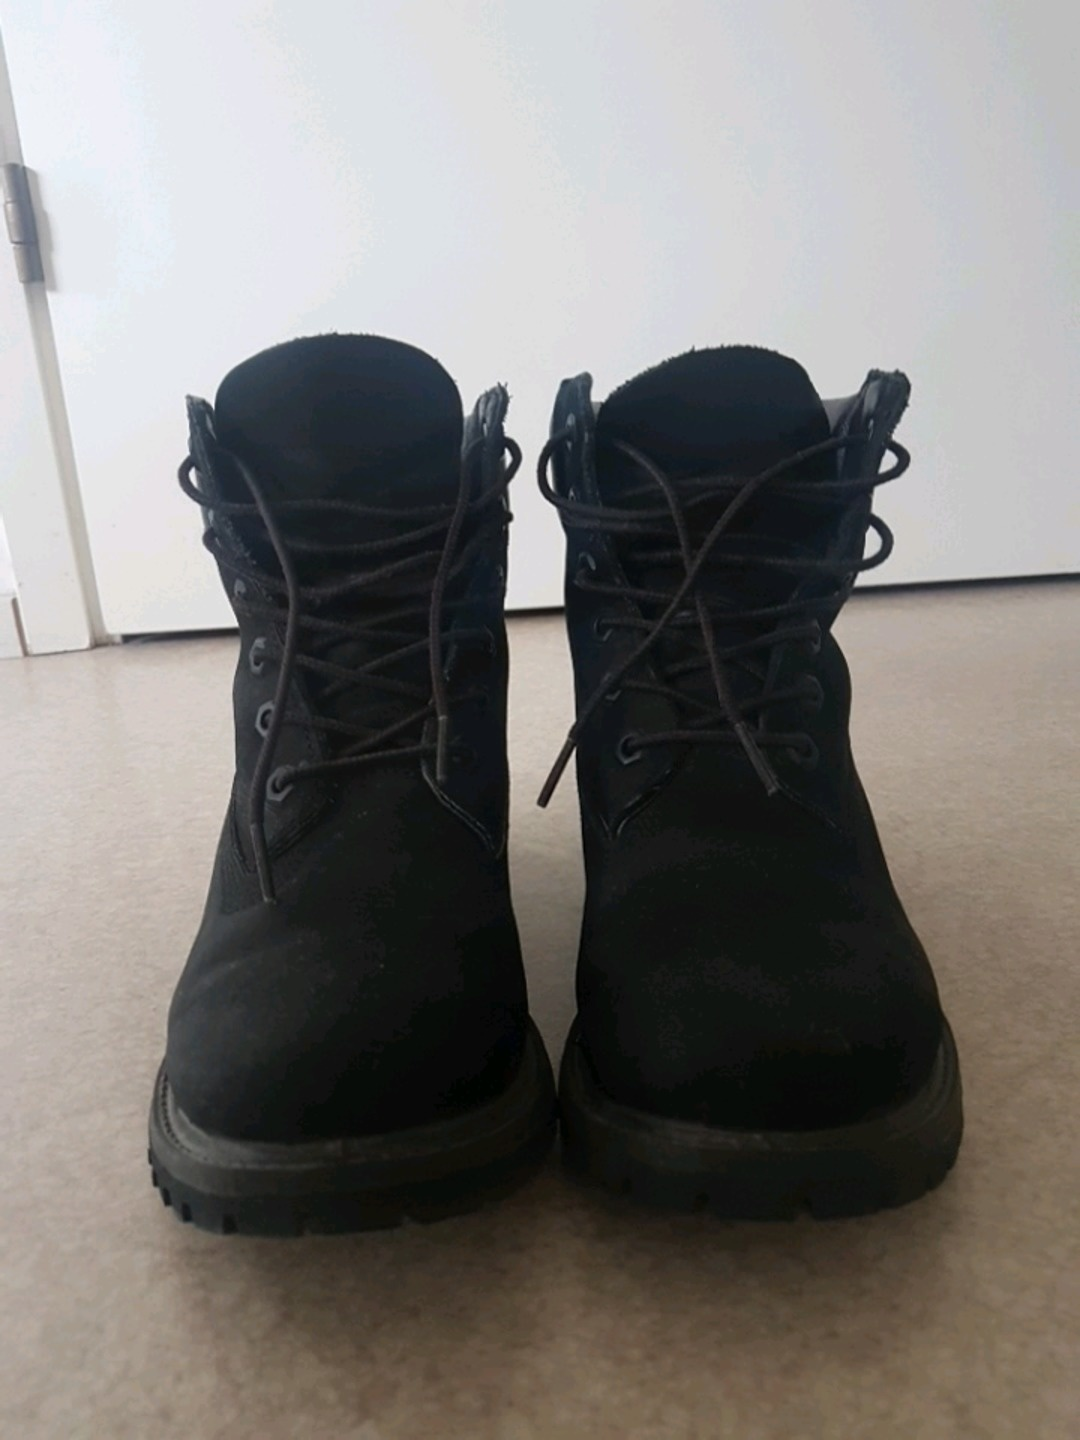 Women's boots - TIMBERLAND photo 1